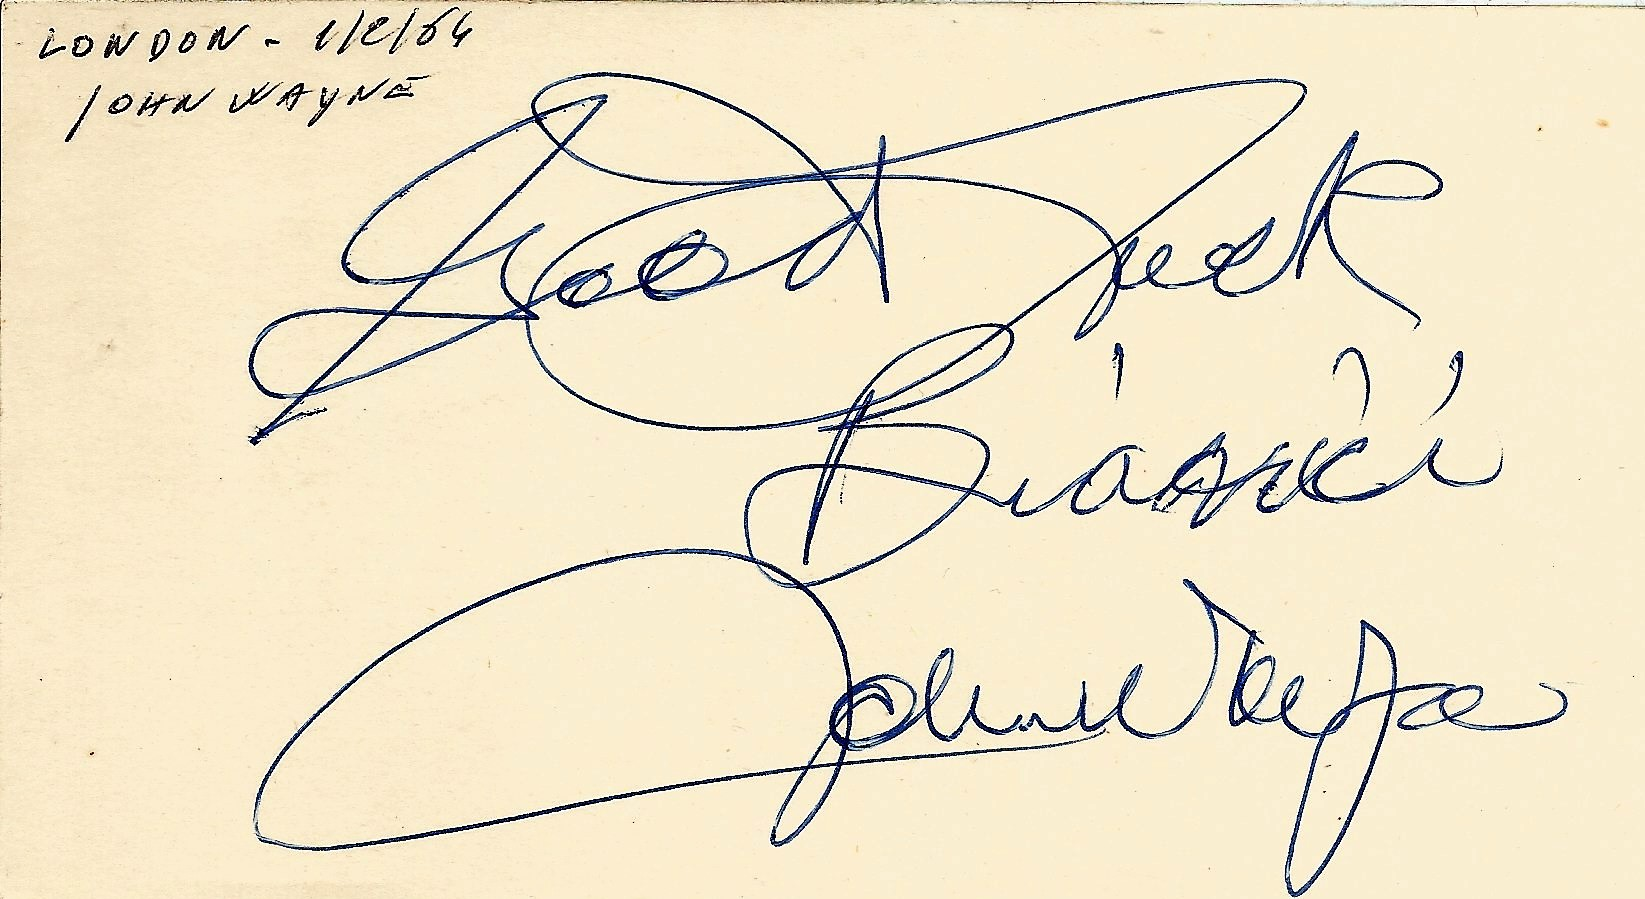 John Wayne signed to clear back of vintage Tiberio Restaurant 4 x 3 inch contact card. Inscribed